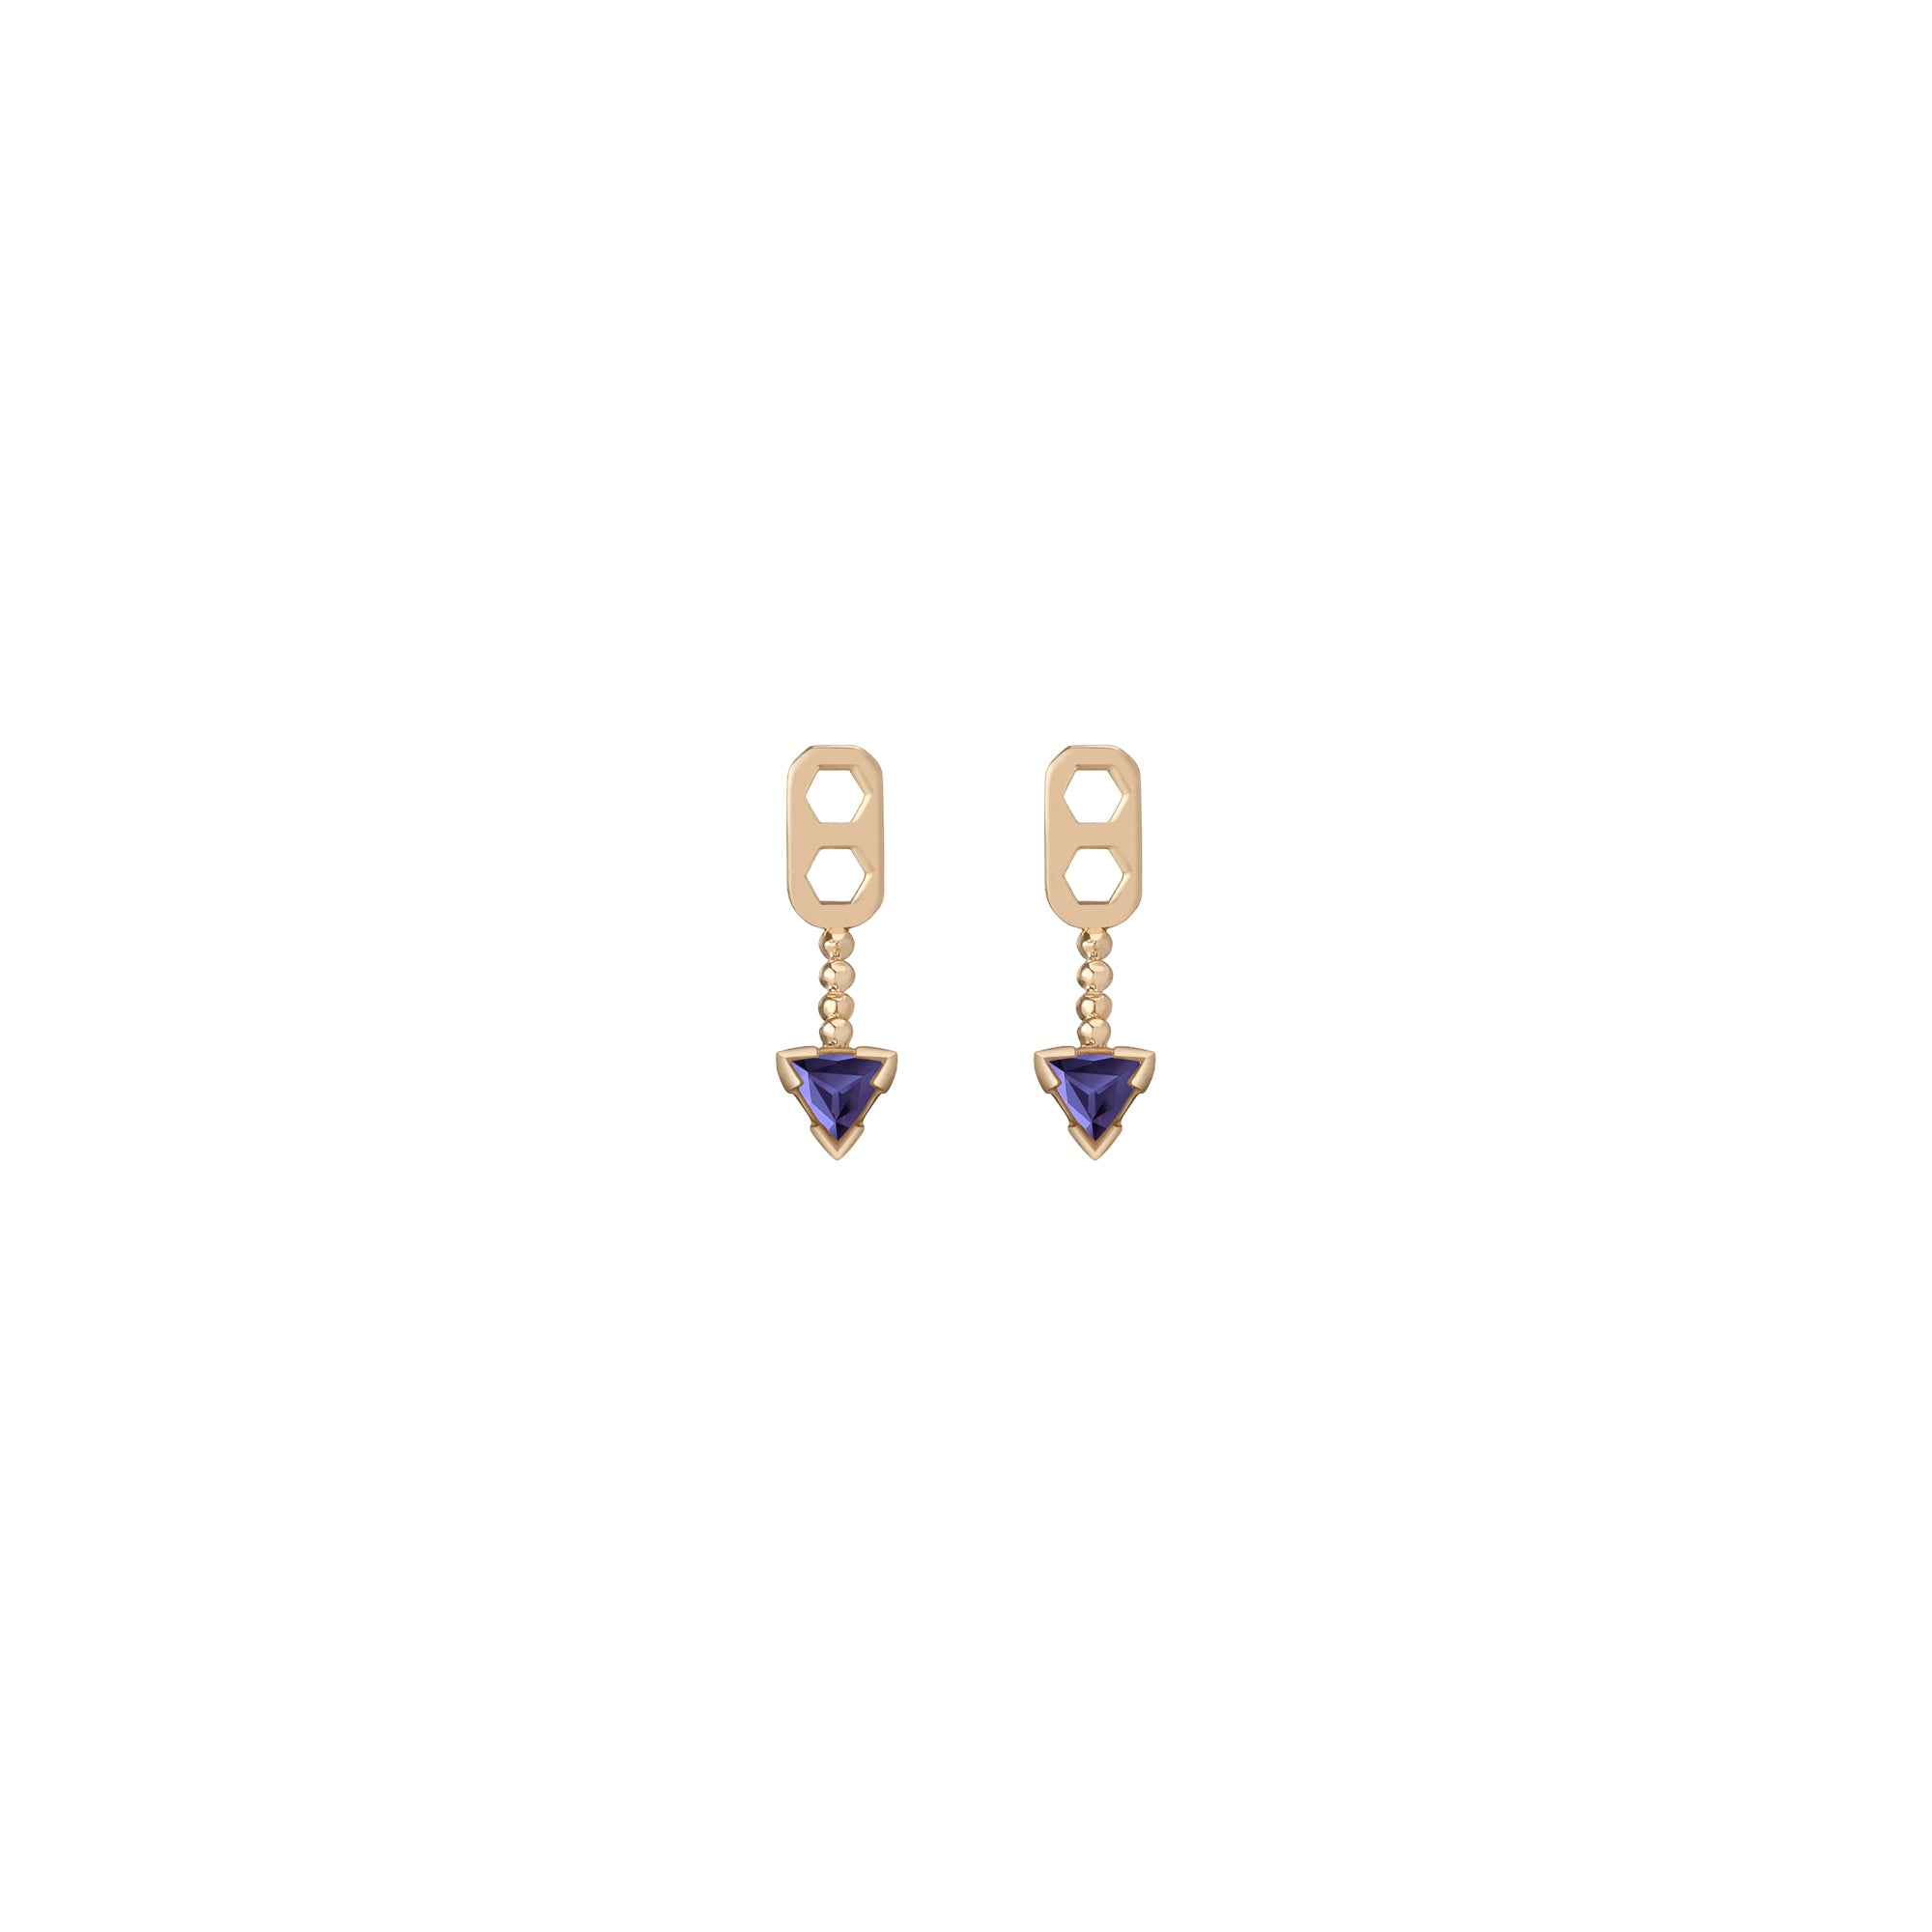 highres garnet yccgt color marrakech earrings products white tanzanite enamorata ook change